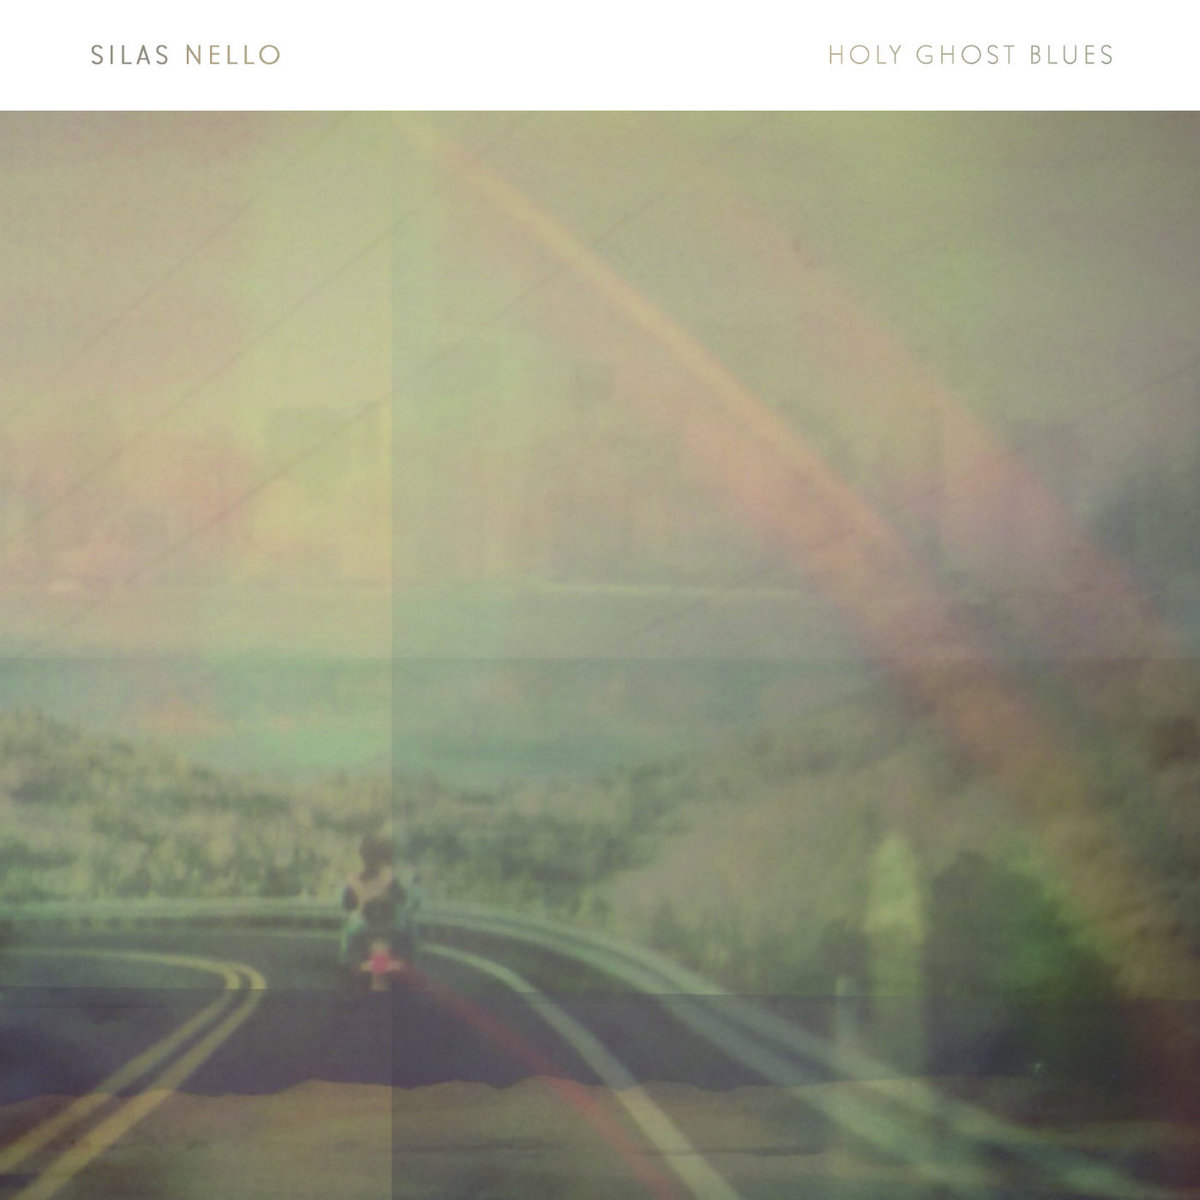 Holy Ghost Blues (Radio Edit) by Silas Nello